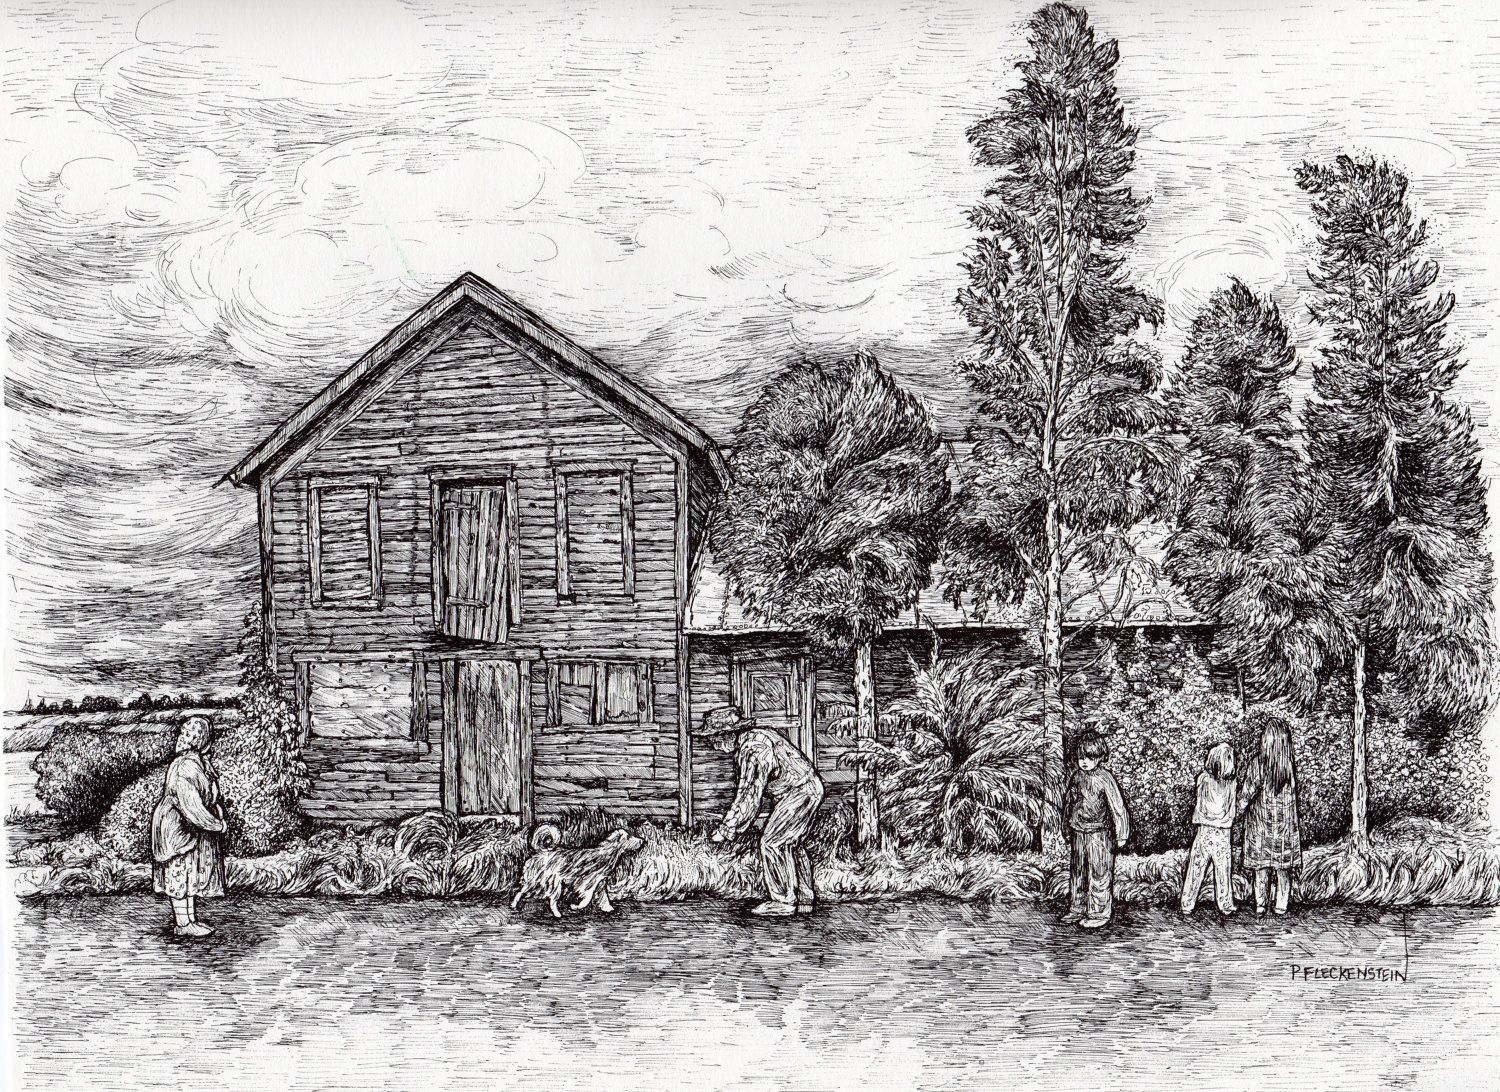 Pen And Ink Drawing PRINT,Country Road,Landscape,Old House,Family,